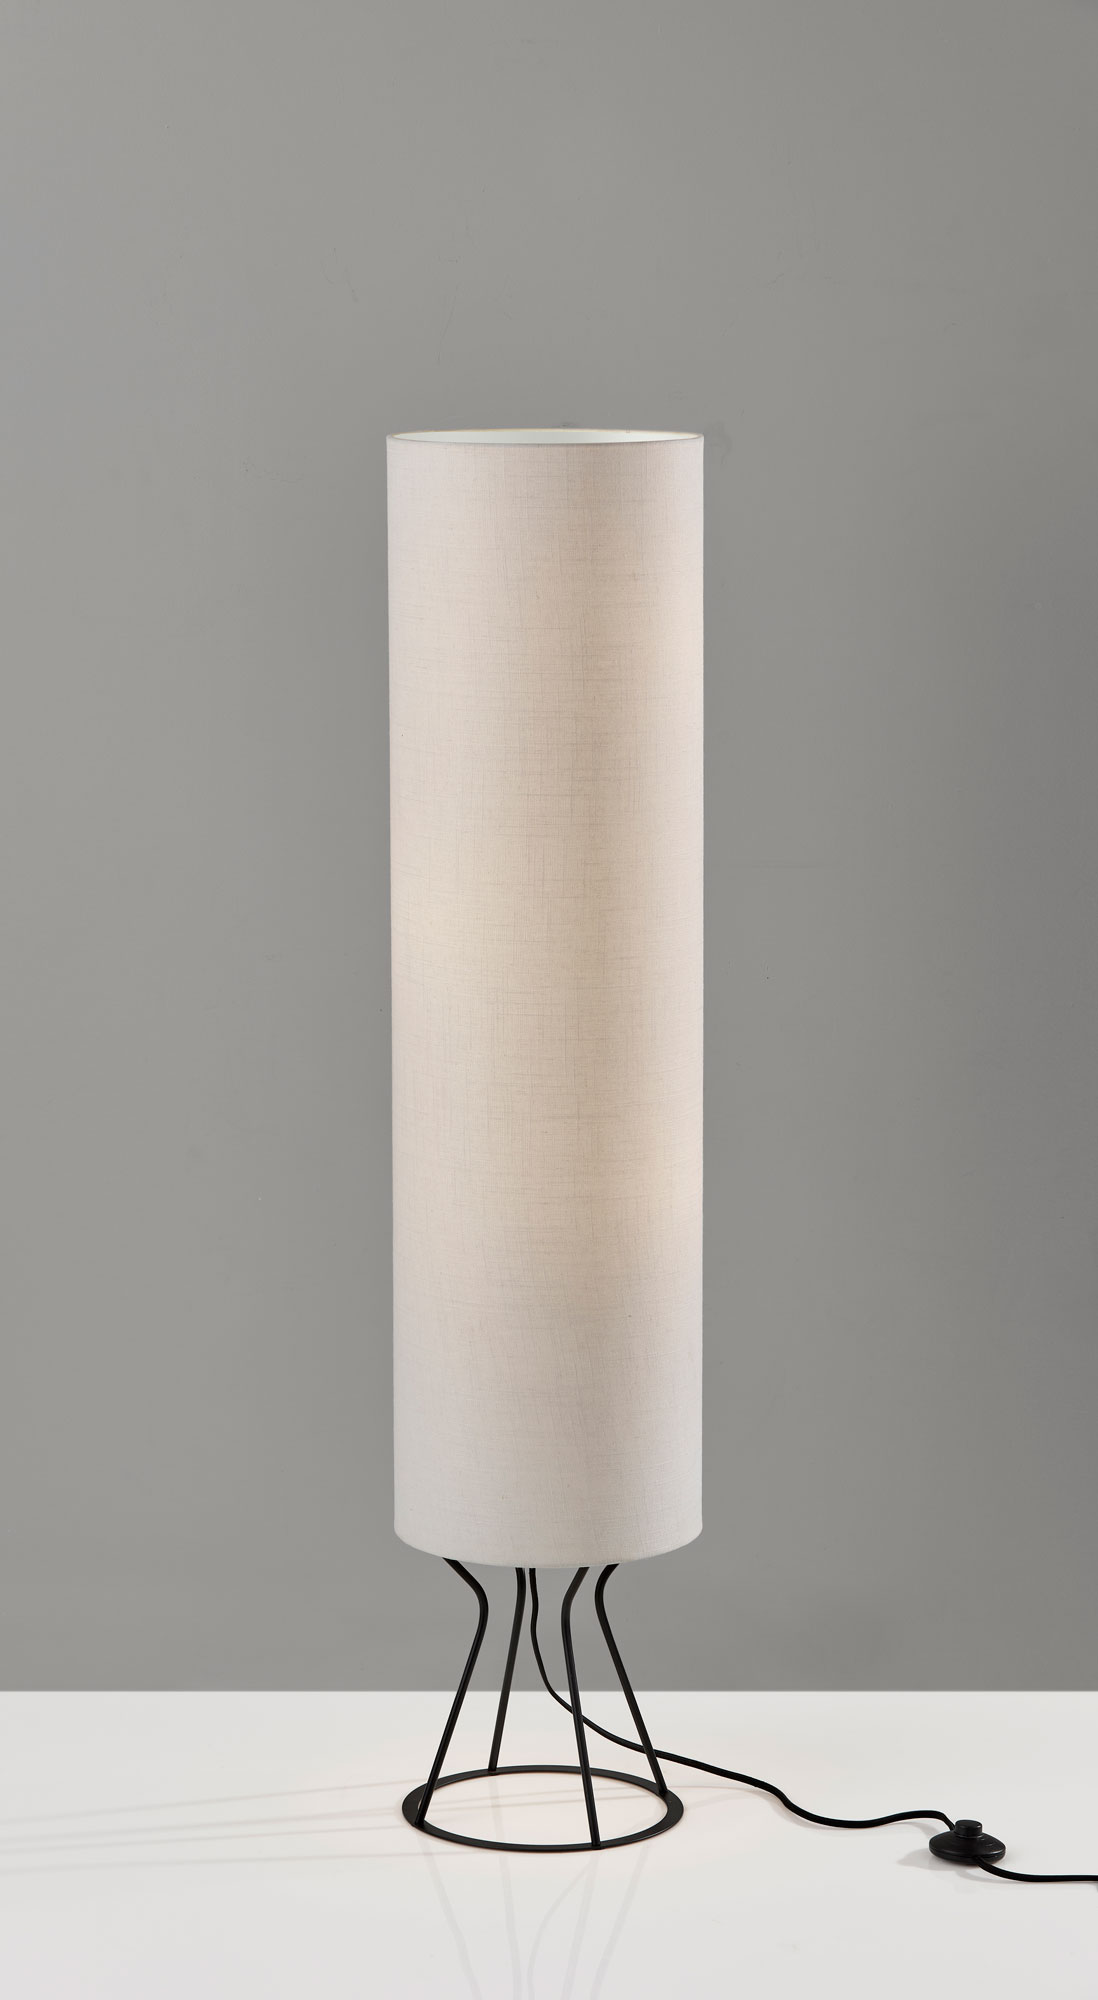 Image of: Melody Floor Lamp By Adesso Corp 3309 01